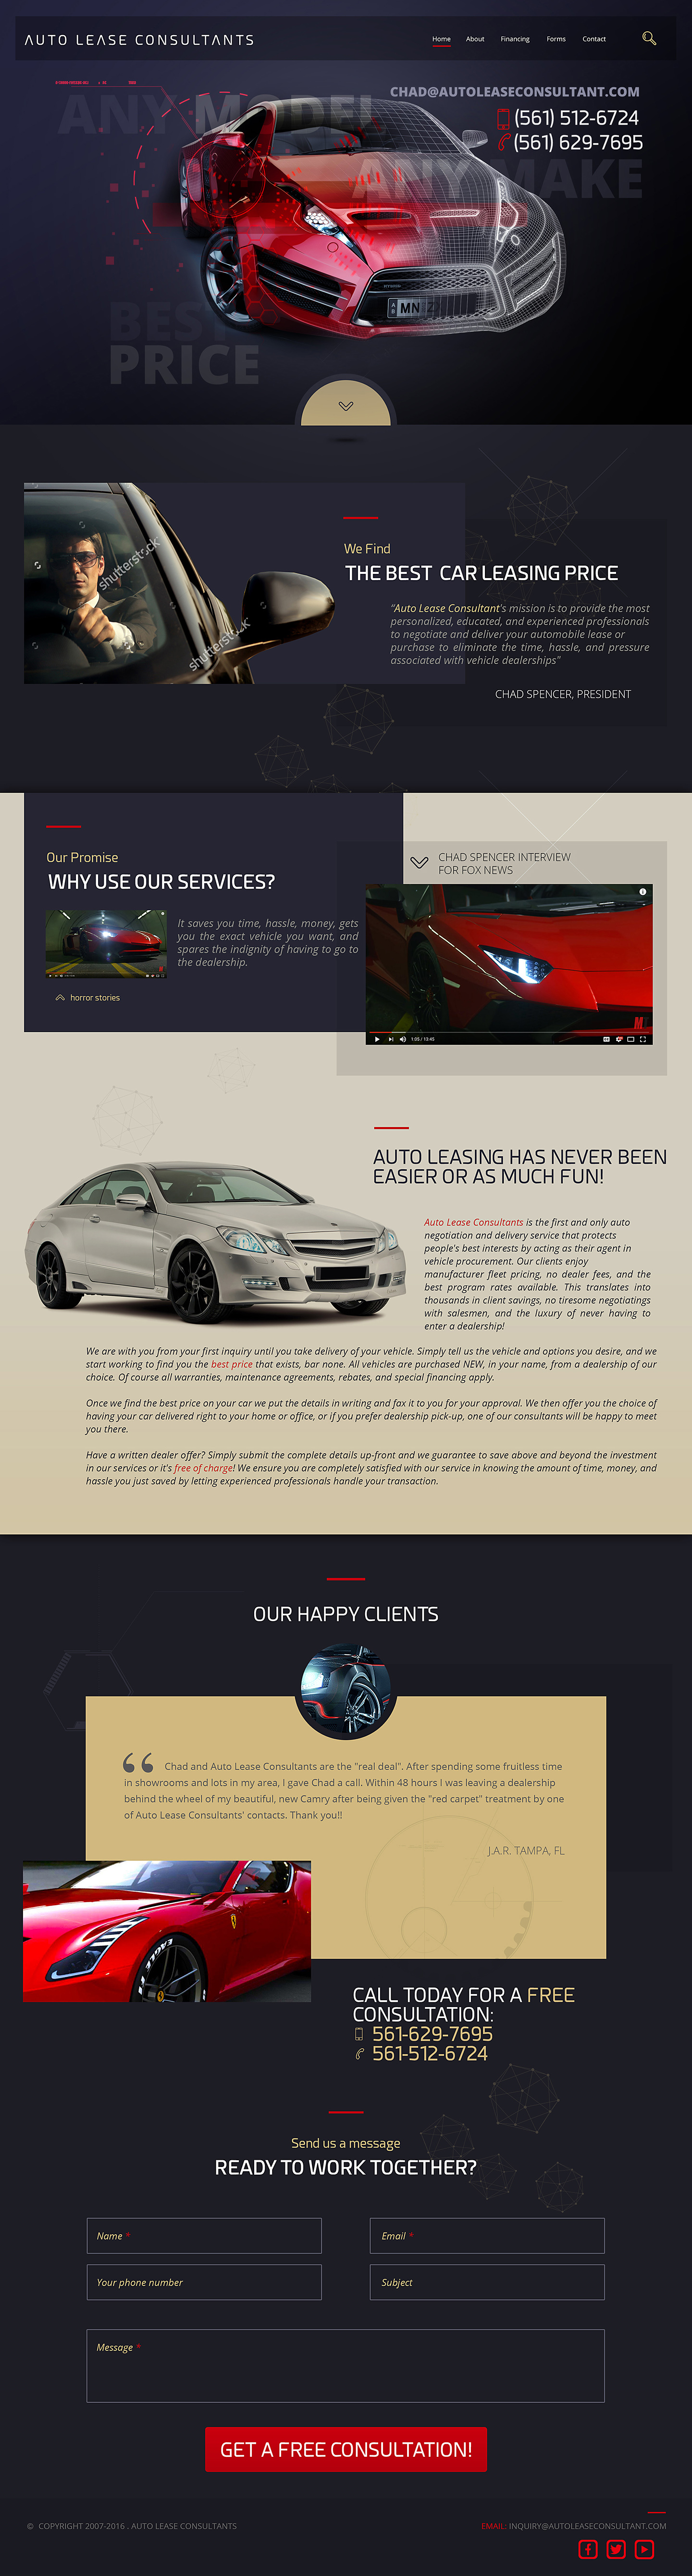 Auto Lease Consultant Website Design, Branding and Development